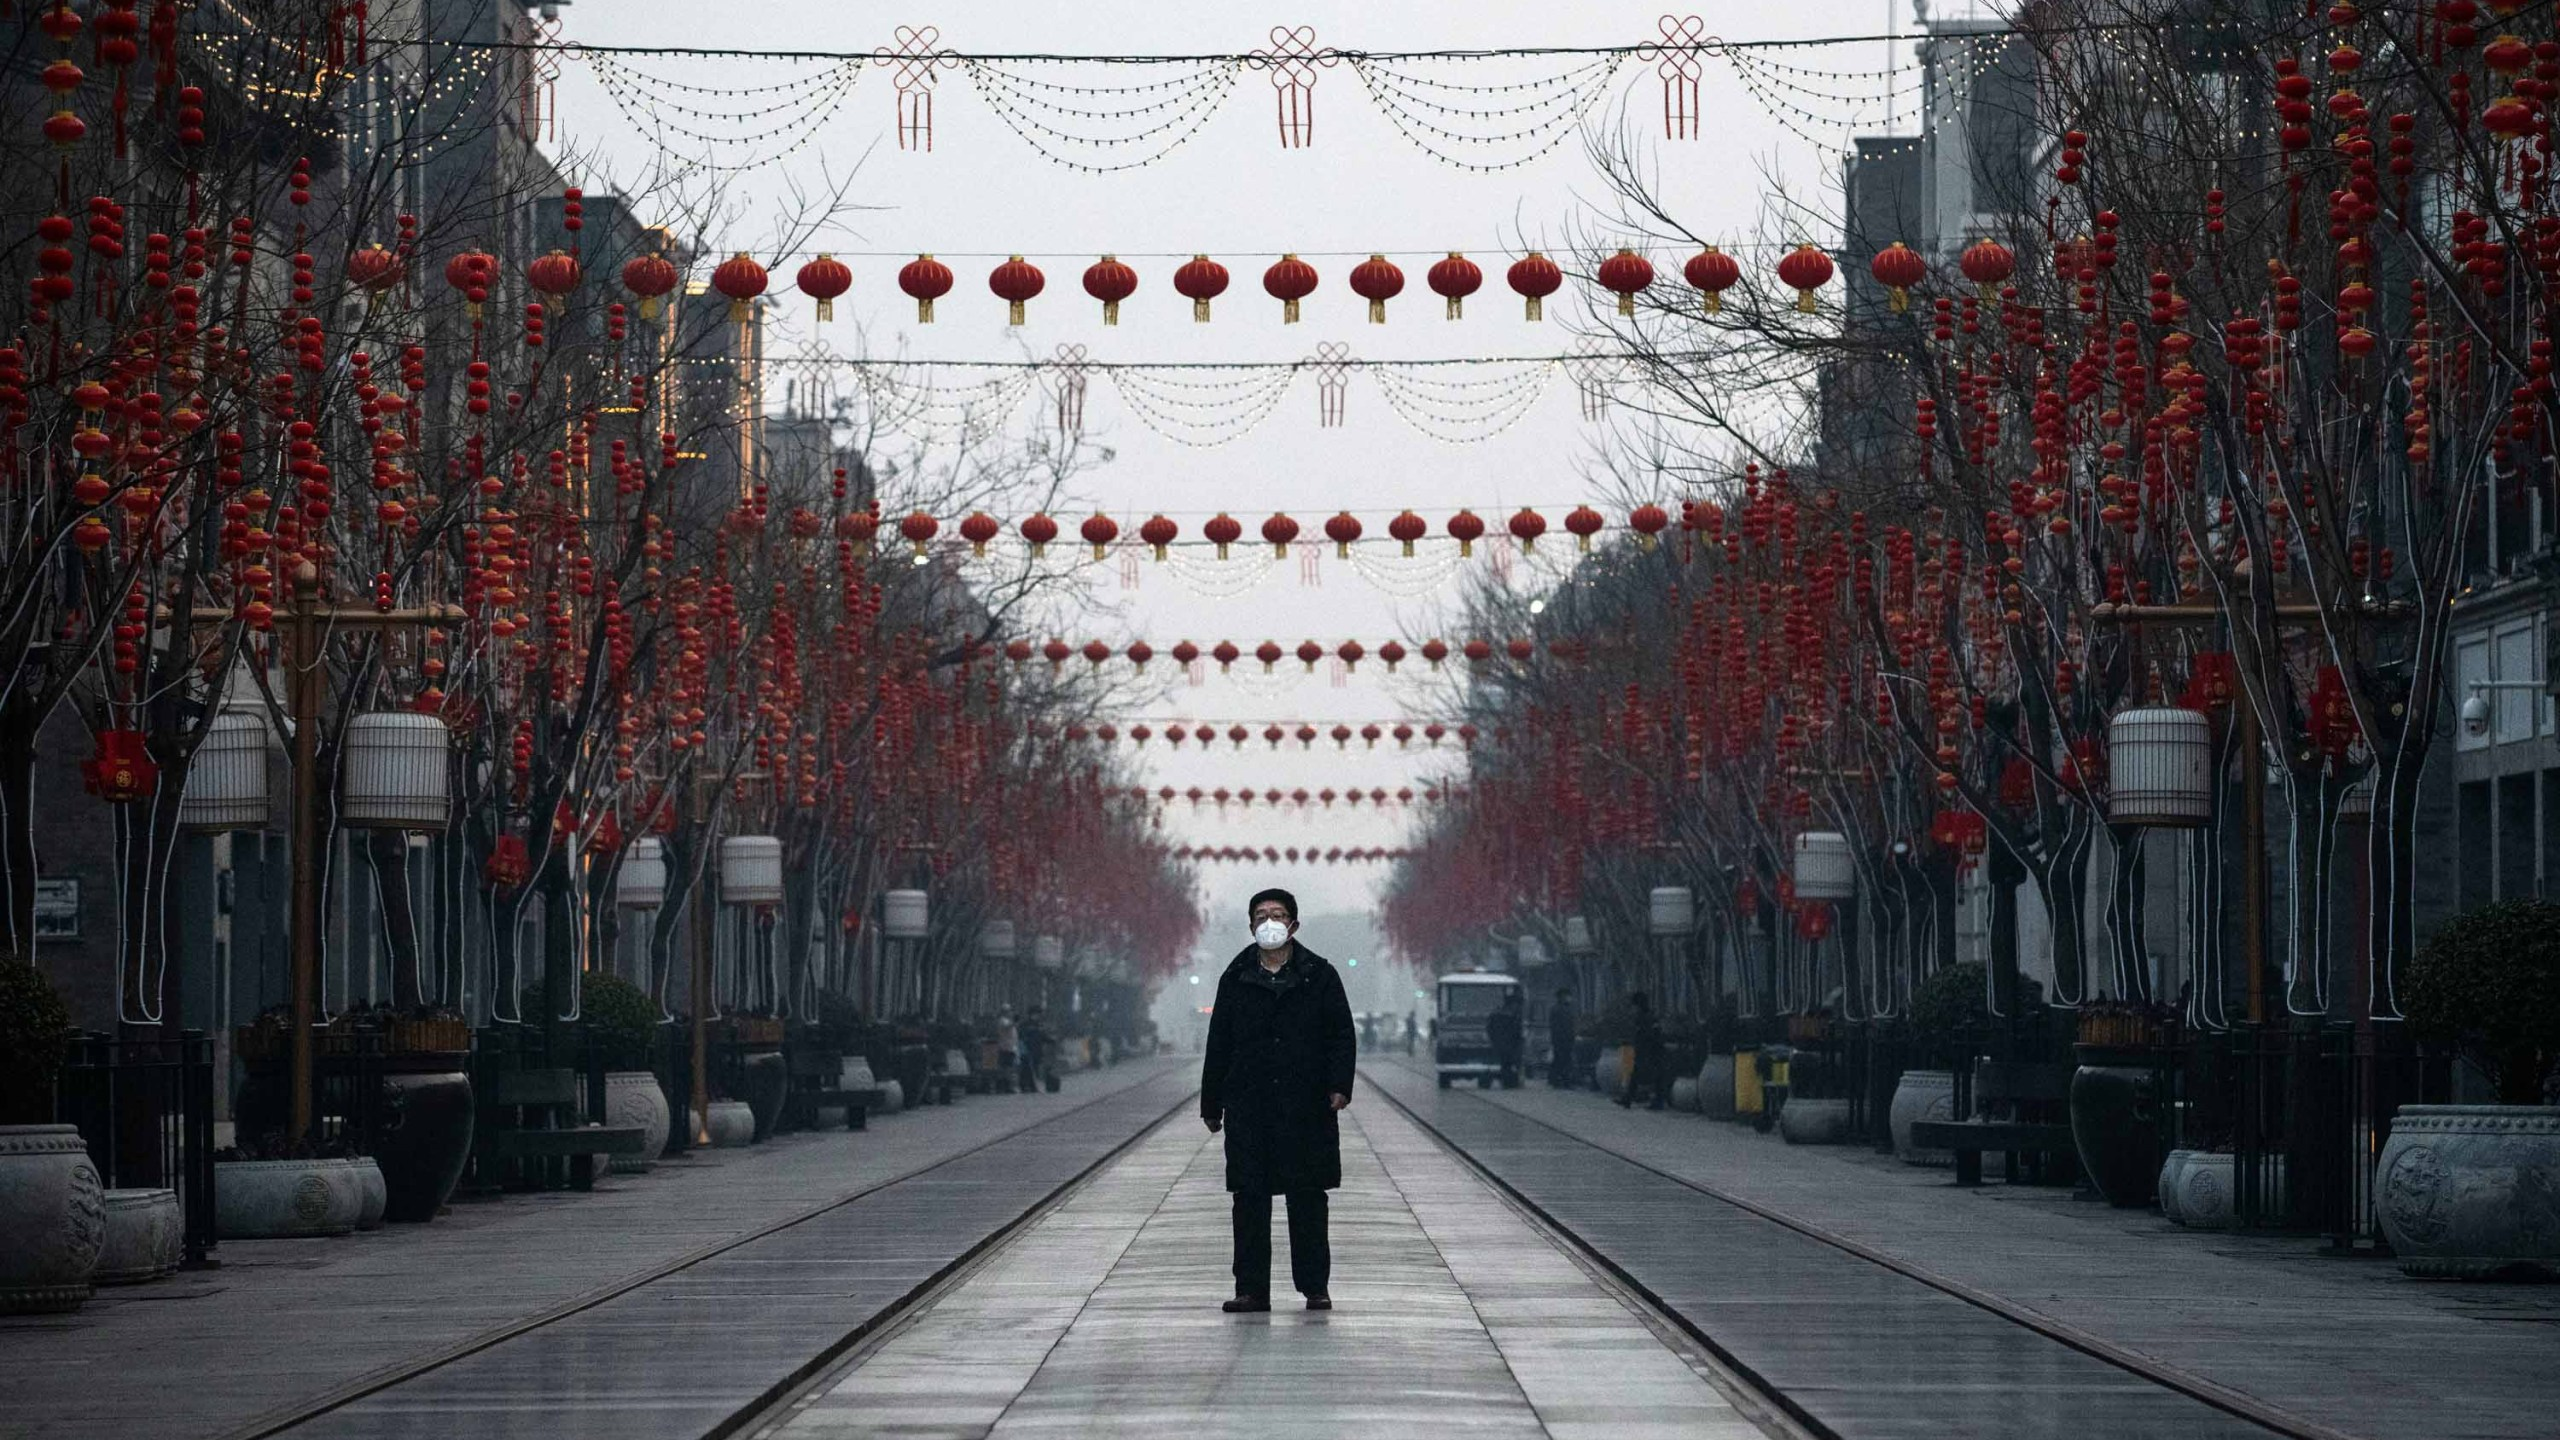 BEIJING, CHINA - FEBRUARY 12: A Chinese man wears a protective mask as he walks in a nearly empty and shuttered commercial street on February 12, 2020 in Beijing, China. The number of cases of a deadly new coronavirus rose to more than 44000 in mainland China Wednesday, days after the World Health Organization (WHO) declared the outbreak a global public health emergency. China continued to lock down the city of Wuhan in an effort to contain the spread of the pneumonia-like disease which medicals experts have confirmed can be passed from human to human. In an unprecedented move, Chinese authorities have put travel restrictions on the city which is the epicentre of the virus and municipalities in other parts of the country affecting tens of millions of people. The number of those who have died from the virus in China climbed to over 1100 on Wednesday, mostly in Hubei province, and cases have been reported in other countries including the United States, Canada, Australia, Japan, South Korea, India, the United Kingdom, Germany, France and several others. The World Health Organization has warned all governments to be on alert and screening has been stepped up at airports around the world. Some countries, including the United States, have put restrictions on Chinese travellers entering and advised their citizens against travel to China